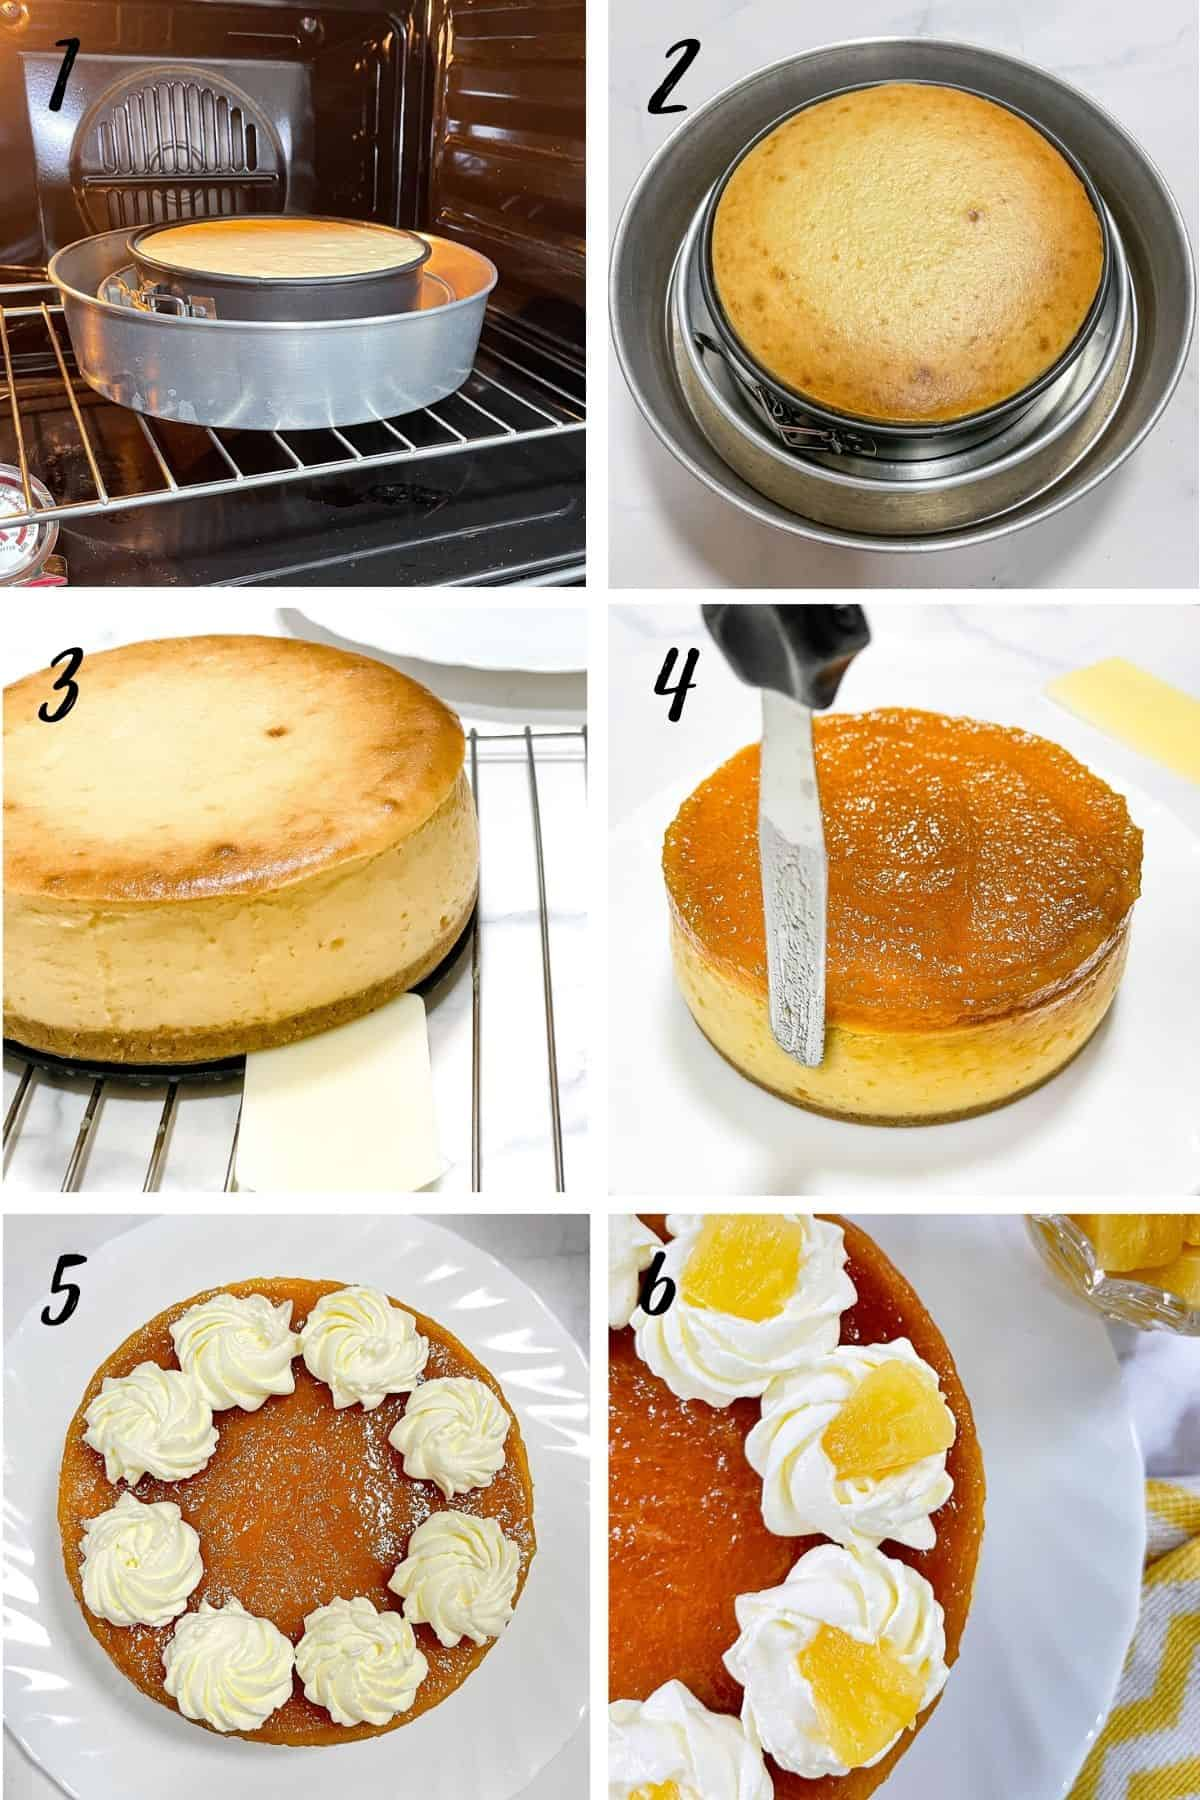 A poster of 6 images showing how to add pineapple topping to a cheesecake and how to decorate with whipped cream.